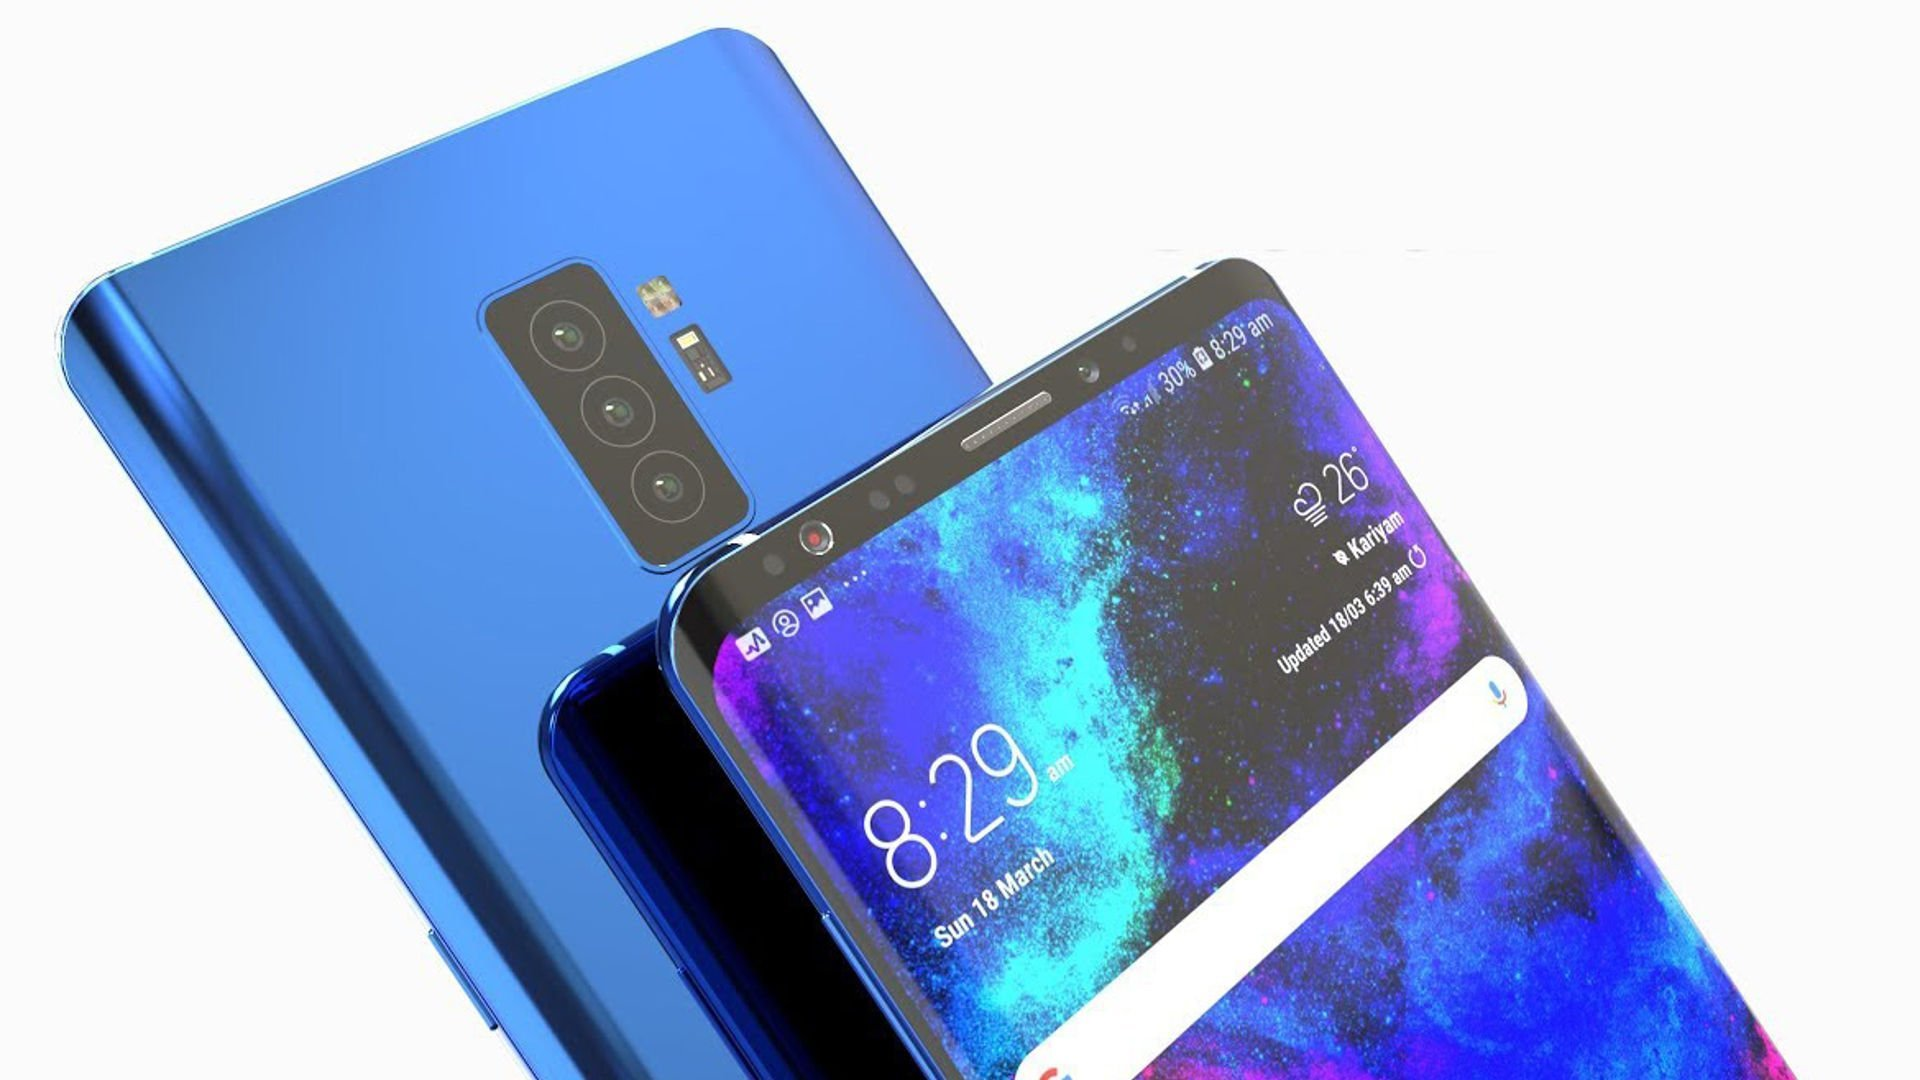 samsung, galaxy s10, galaxy s10 specs, galaxy f, galaxy x, samsung foldable phone, foldable phone, galaxy foldable phone